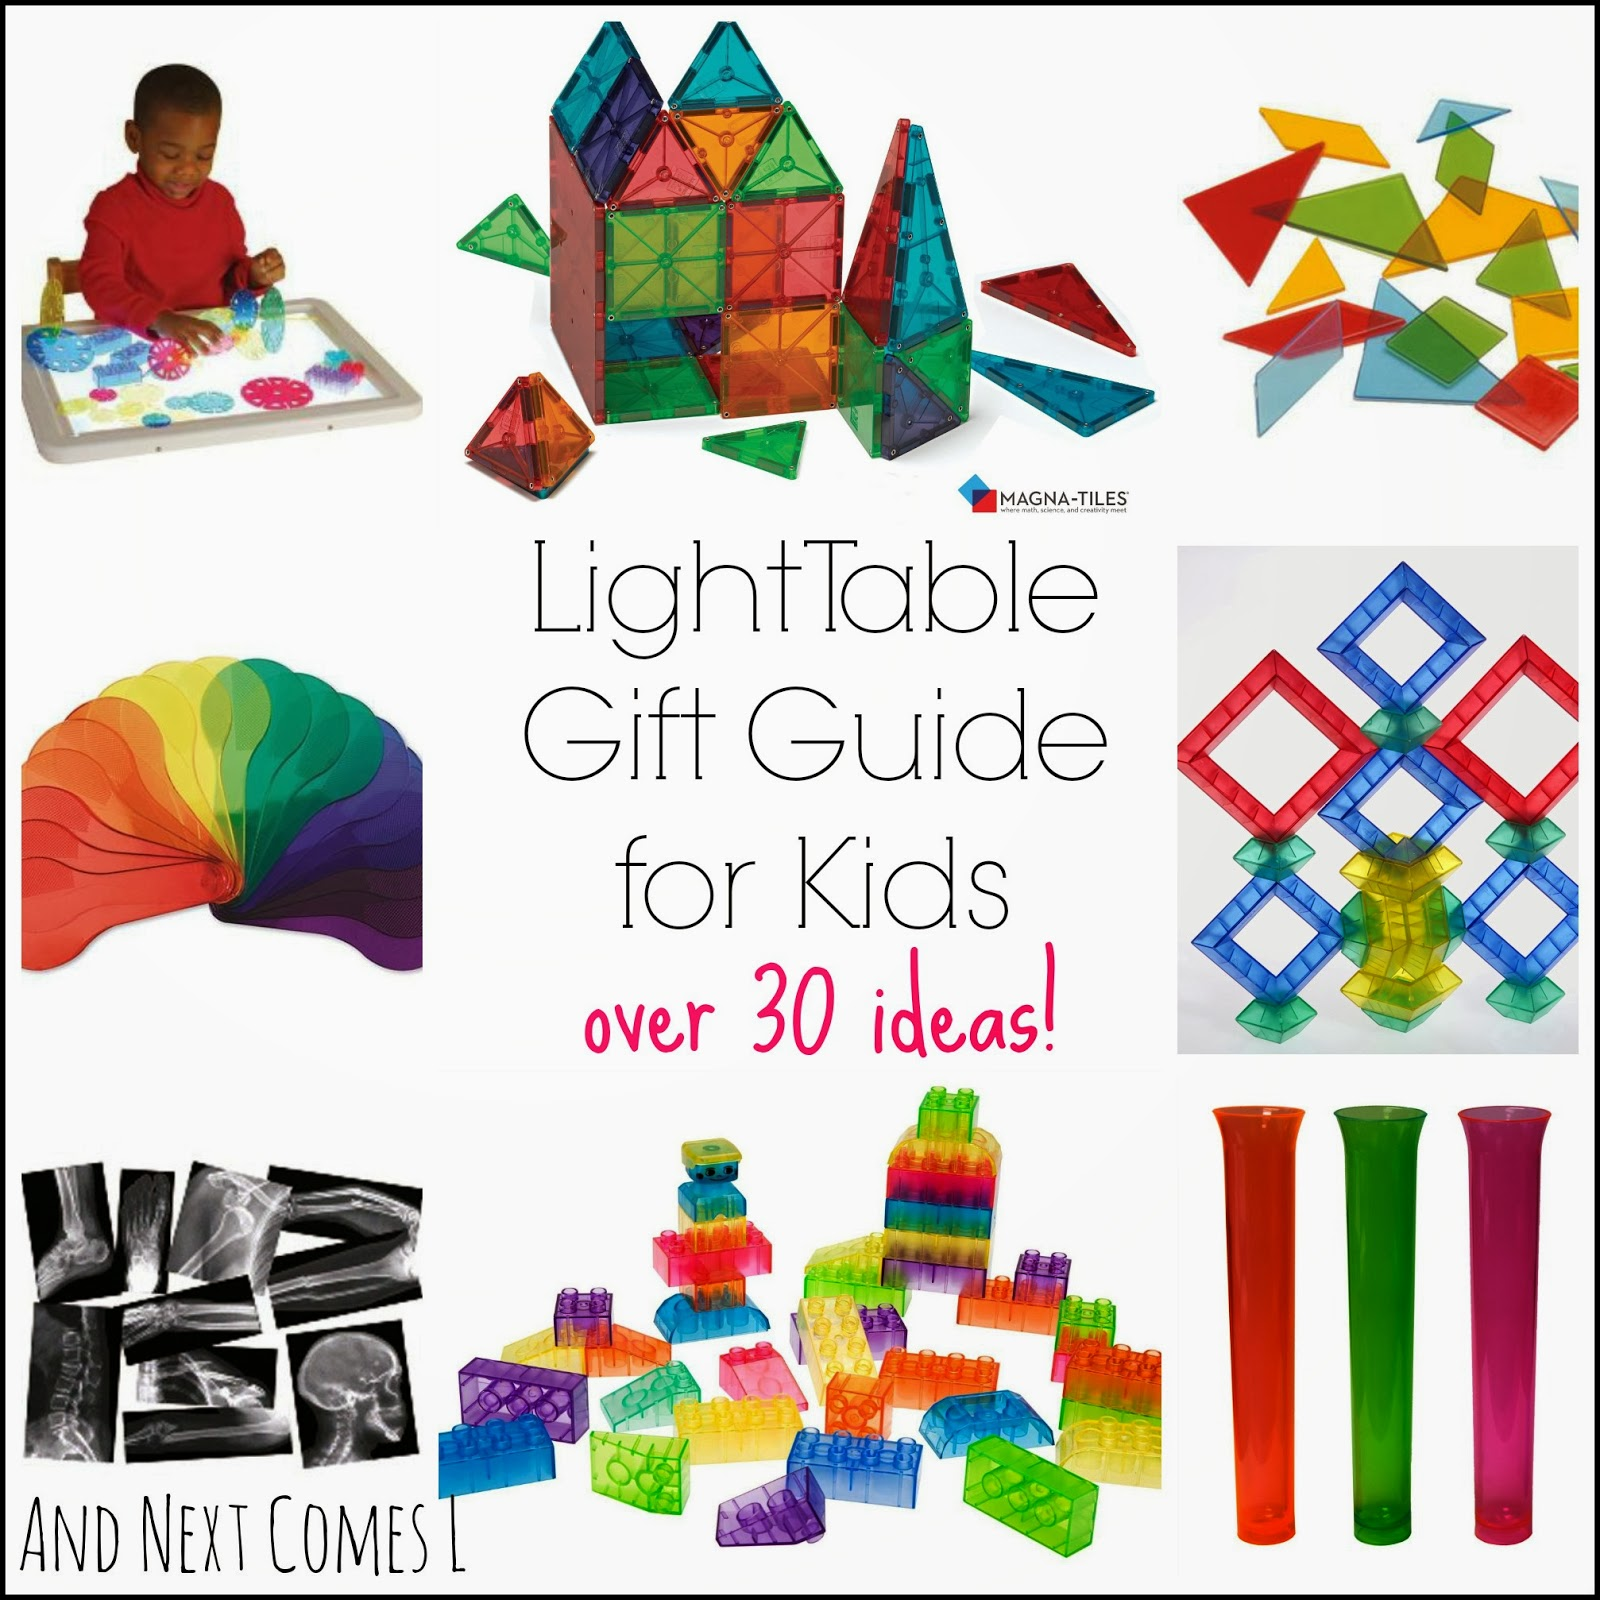 Light Table Gift Guide For Kids  And Next Comes L. Grey Tile Bathroom Ideas Pinterest. House Ideas Skyrim. Craft Ideas Leaves. Design Ideas Roman Blinds. Pedestal Ideas Small Bathroom Vanity. Party Ideas Philippines. Kitchen Shelves Ideas Ikea. Kitchen Design Examples Uk